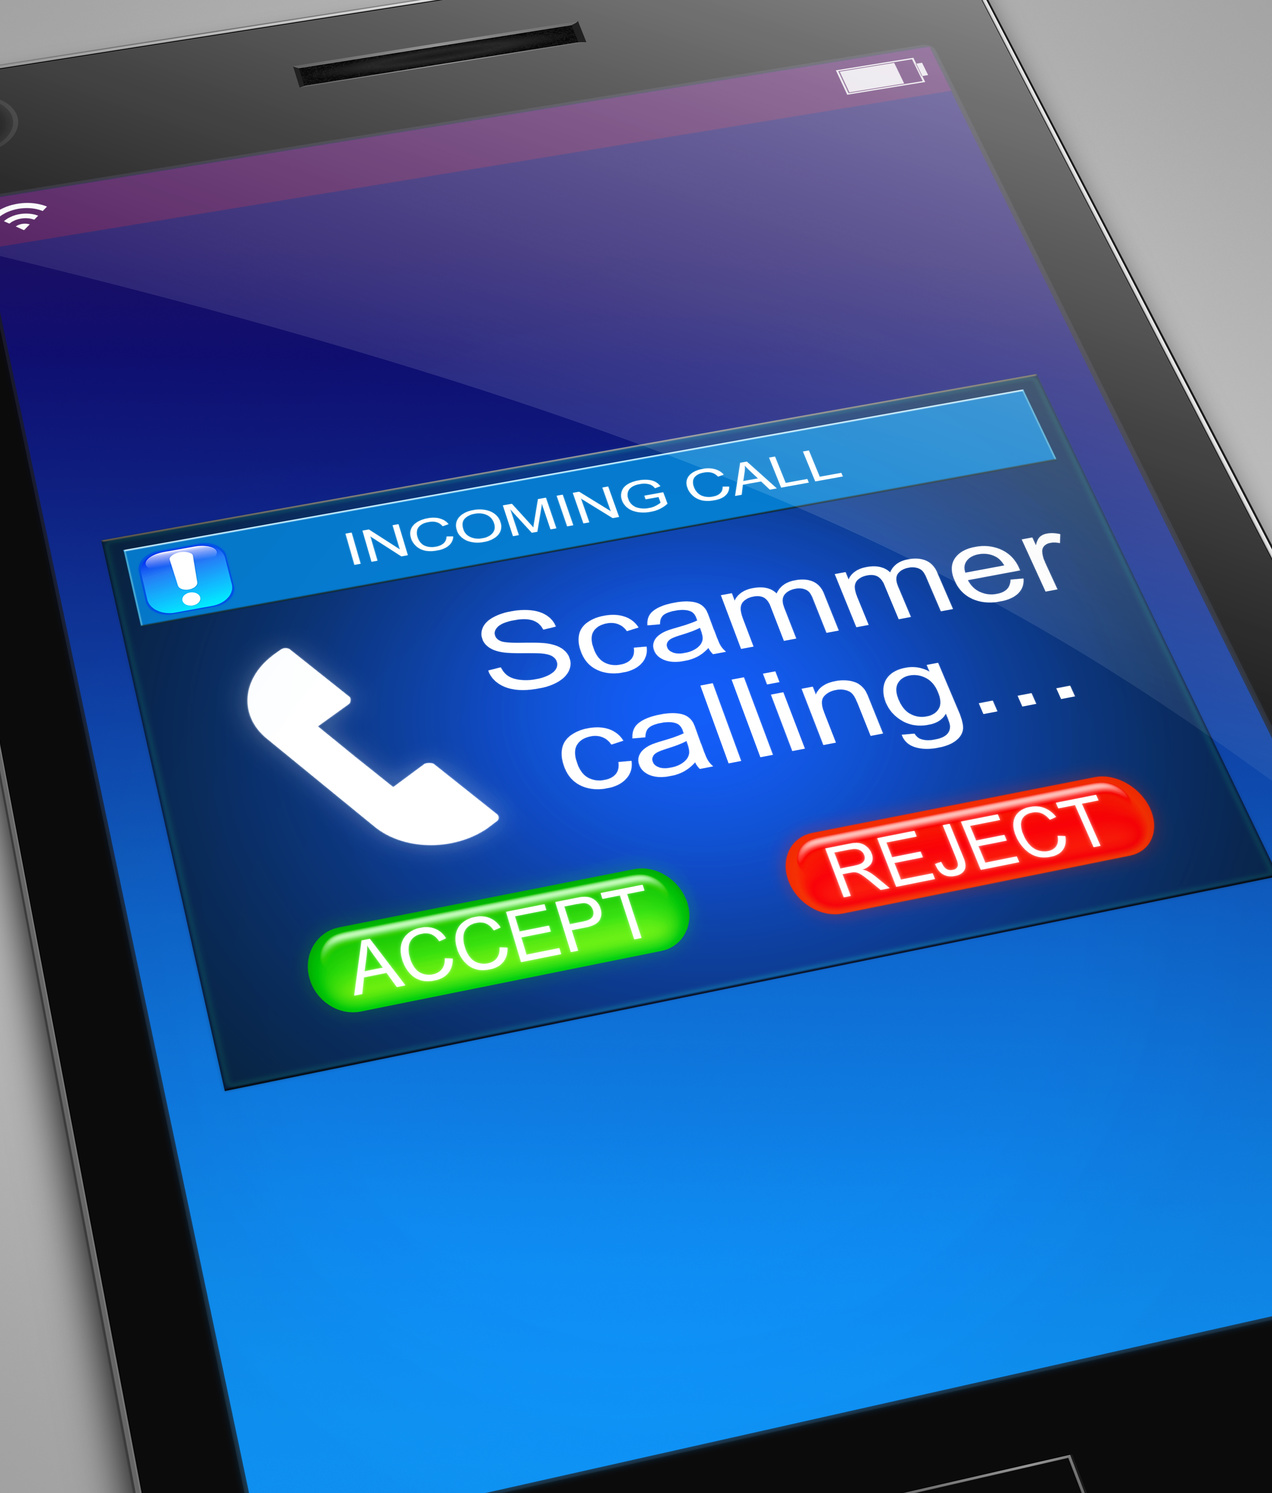 bbb trends: new restrictions on telemarketers — look for relief, but